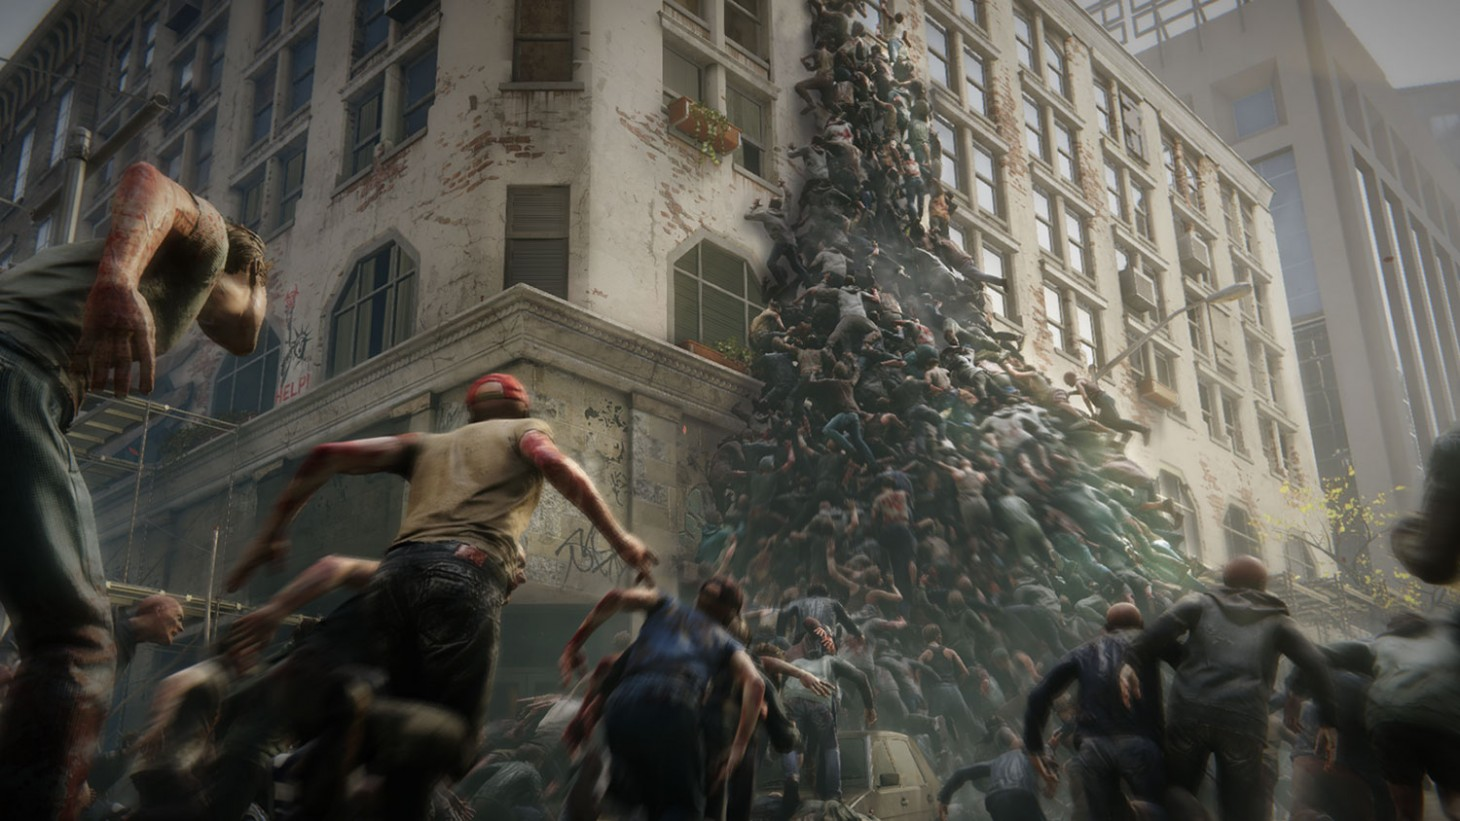 A Closer Look at the World War Z Video Game